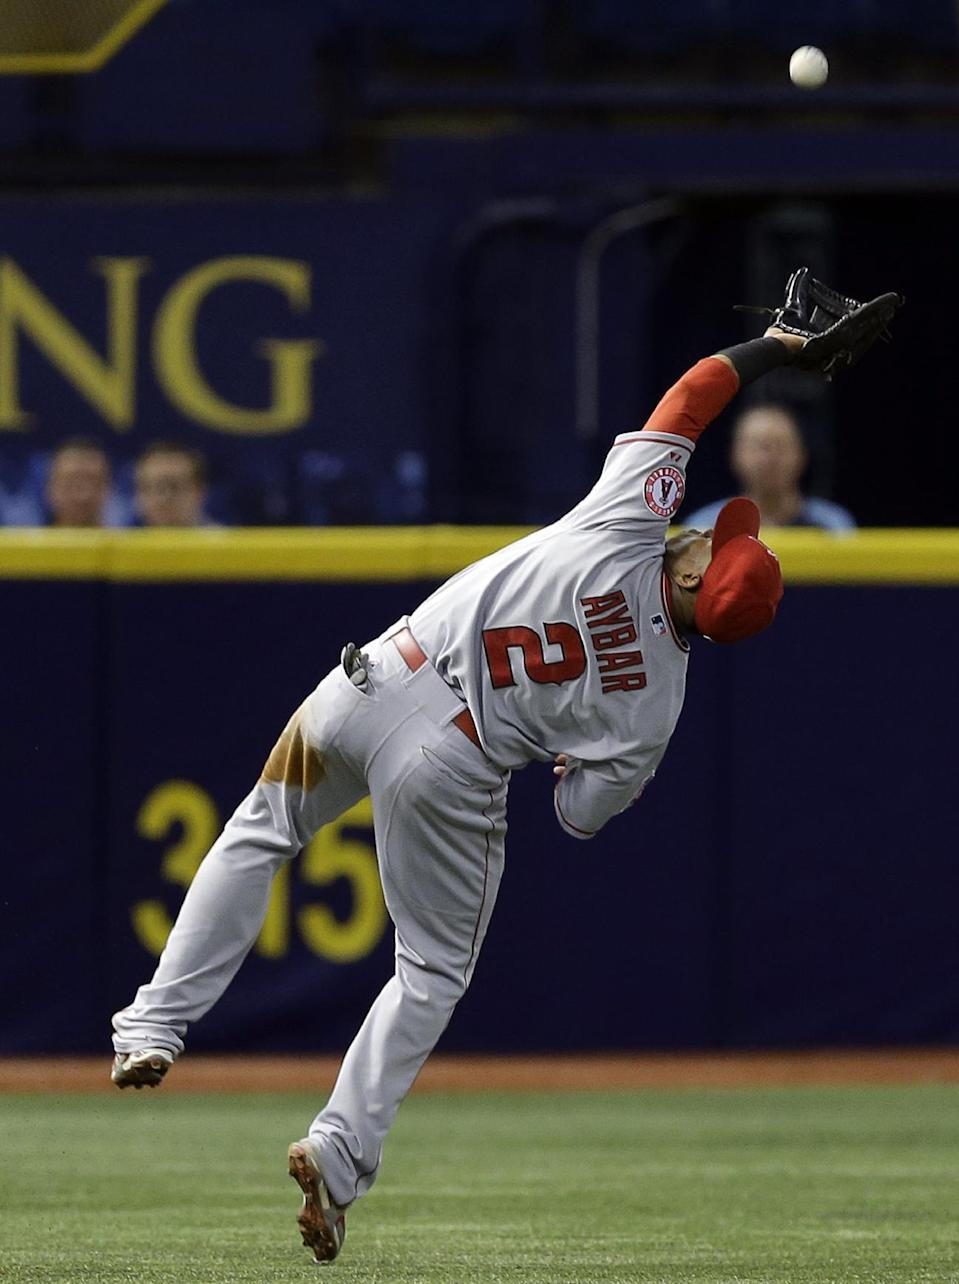 Los Angeles Angels shortstop Erick Aybar makes an off balance catch on a pop out by Tampa Bay Rays' Kevin Kiermaier during the fourth inning of a baseball game Tuesday, June 9, 2015, in St. Petersburg, Fla. (AP Photo/Chris O'Meara)